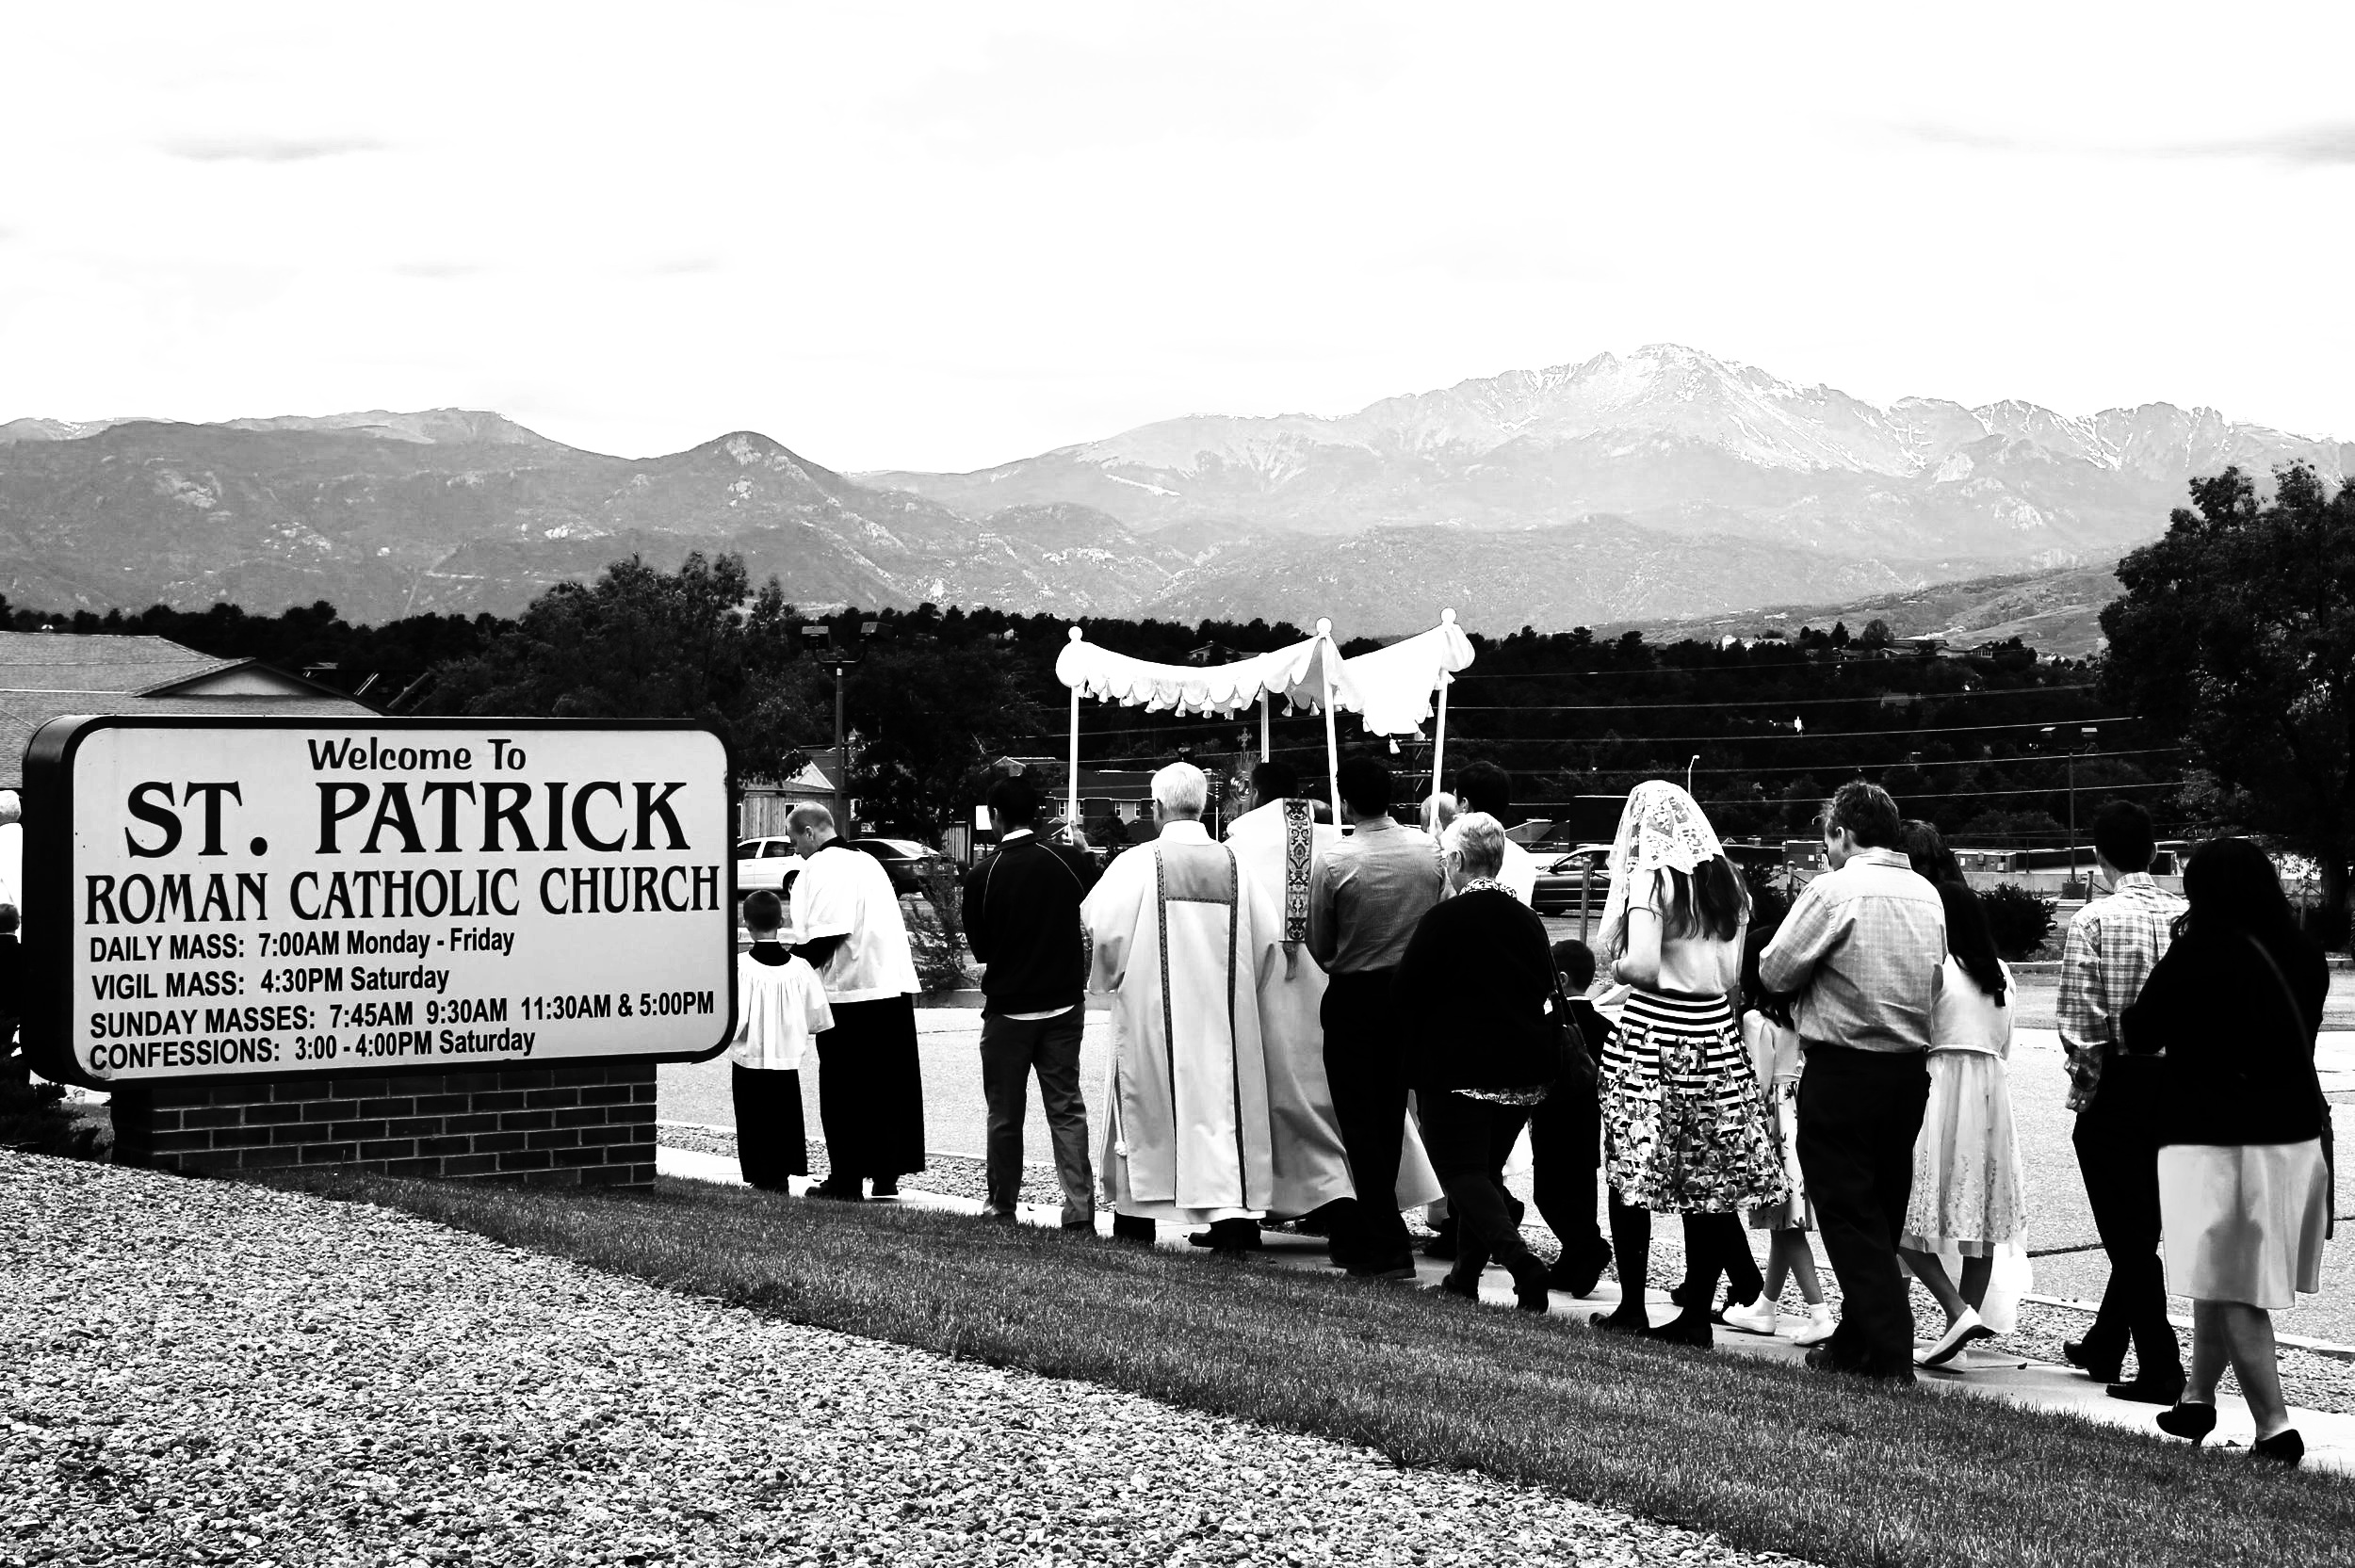 A Historic Procession - We are blessed as a parish to have initiated the annual Corpus Christi Procession last Sunday. I want to thank our Knights of Columbus, Altar Servers, the Altar Guard, our choir for the music for both Mass and Benediction, the Brady family for supplying the rose petal droppers, our deacons, the team that made the Eucharistic canopy, our young adult canopy bearers, and everyone who participated. A very special thanks goes out to Glen Koziuk, Andy Berry and Patty Henderson for organizing the procession. Photos from the procession are available on our website and Facebook page. Let us continue to show our love for our Eucharistic Lord in all of our times of adoration.